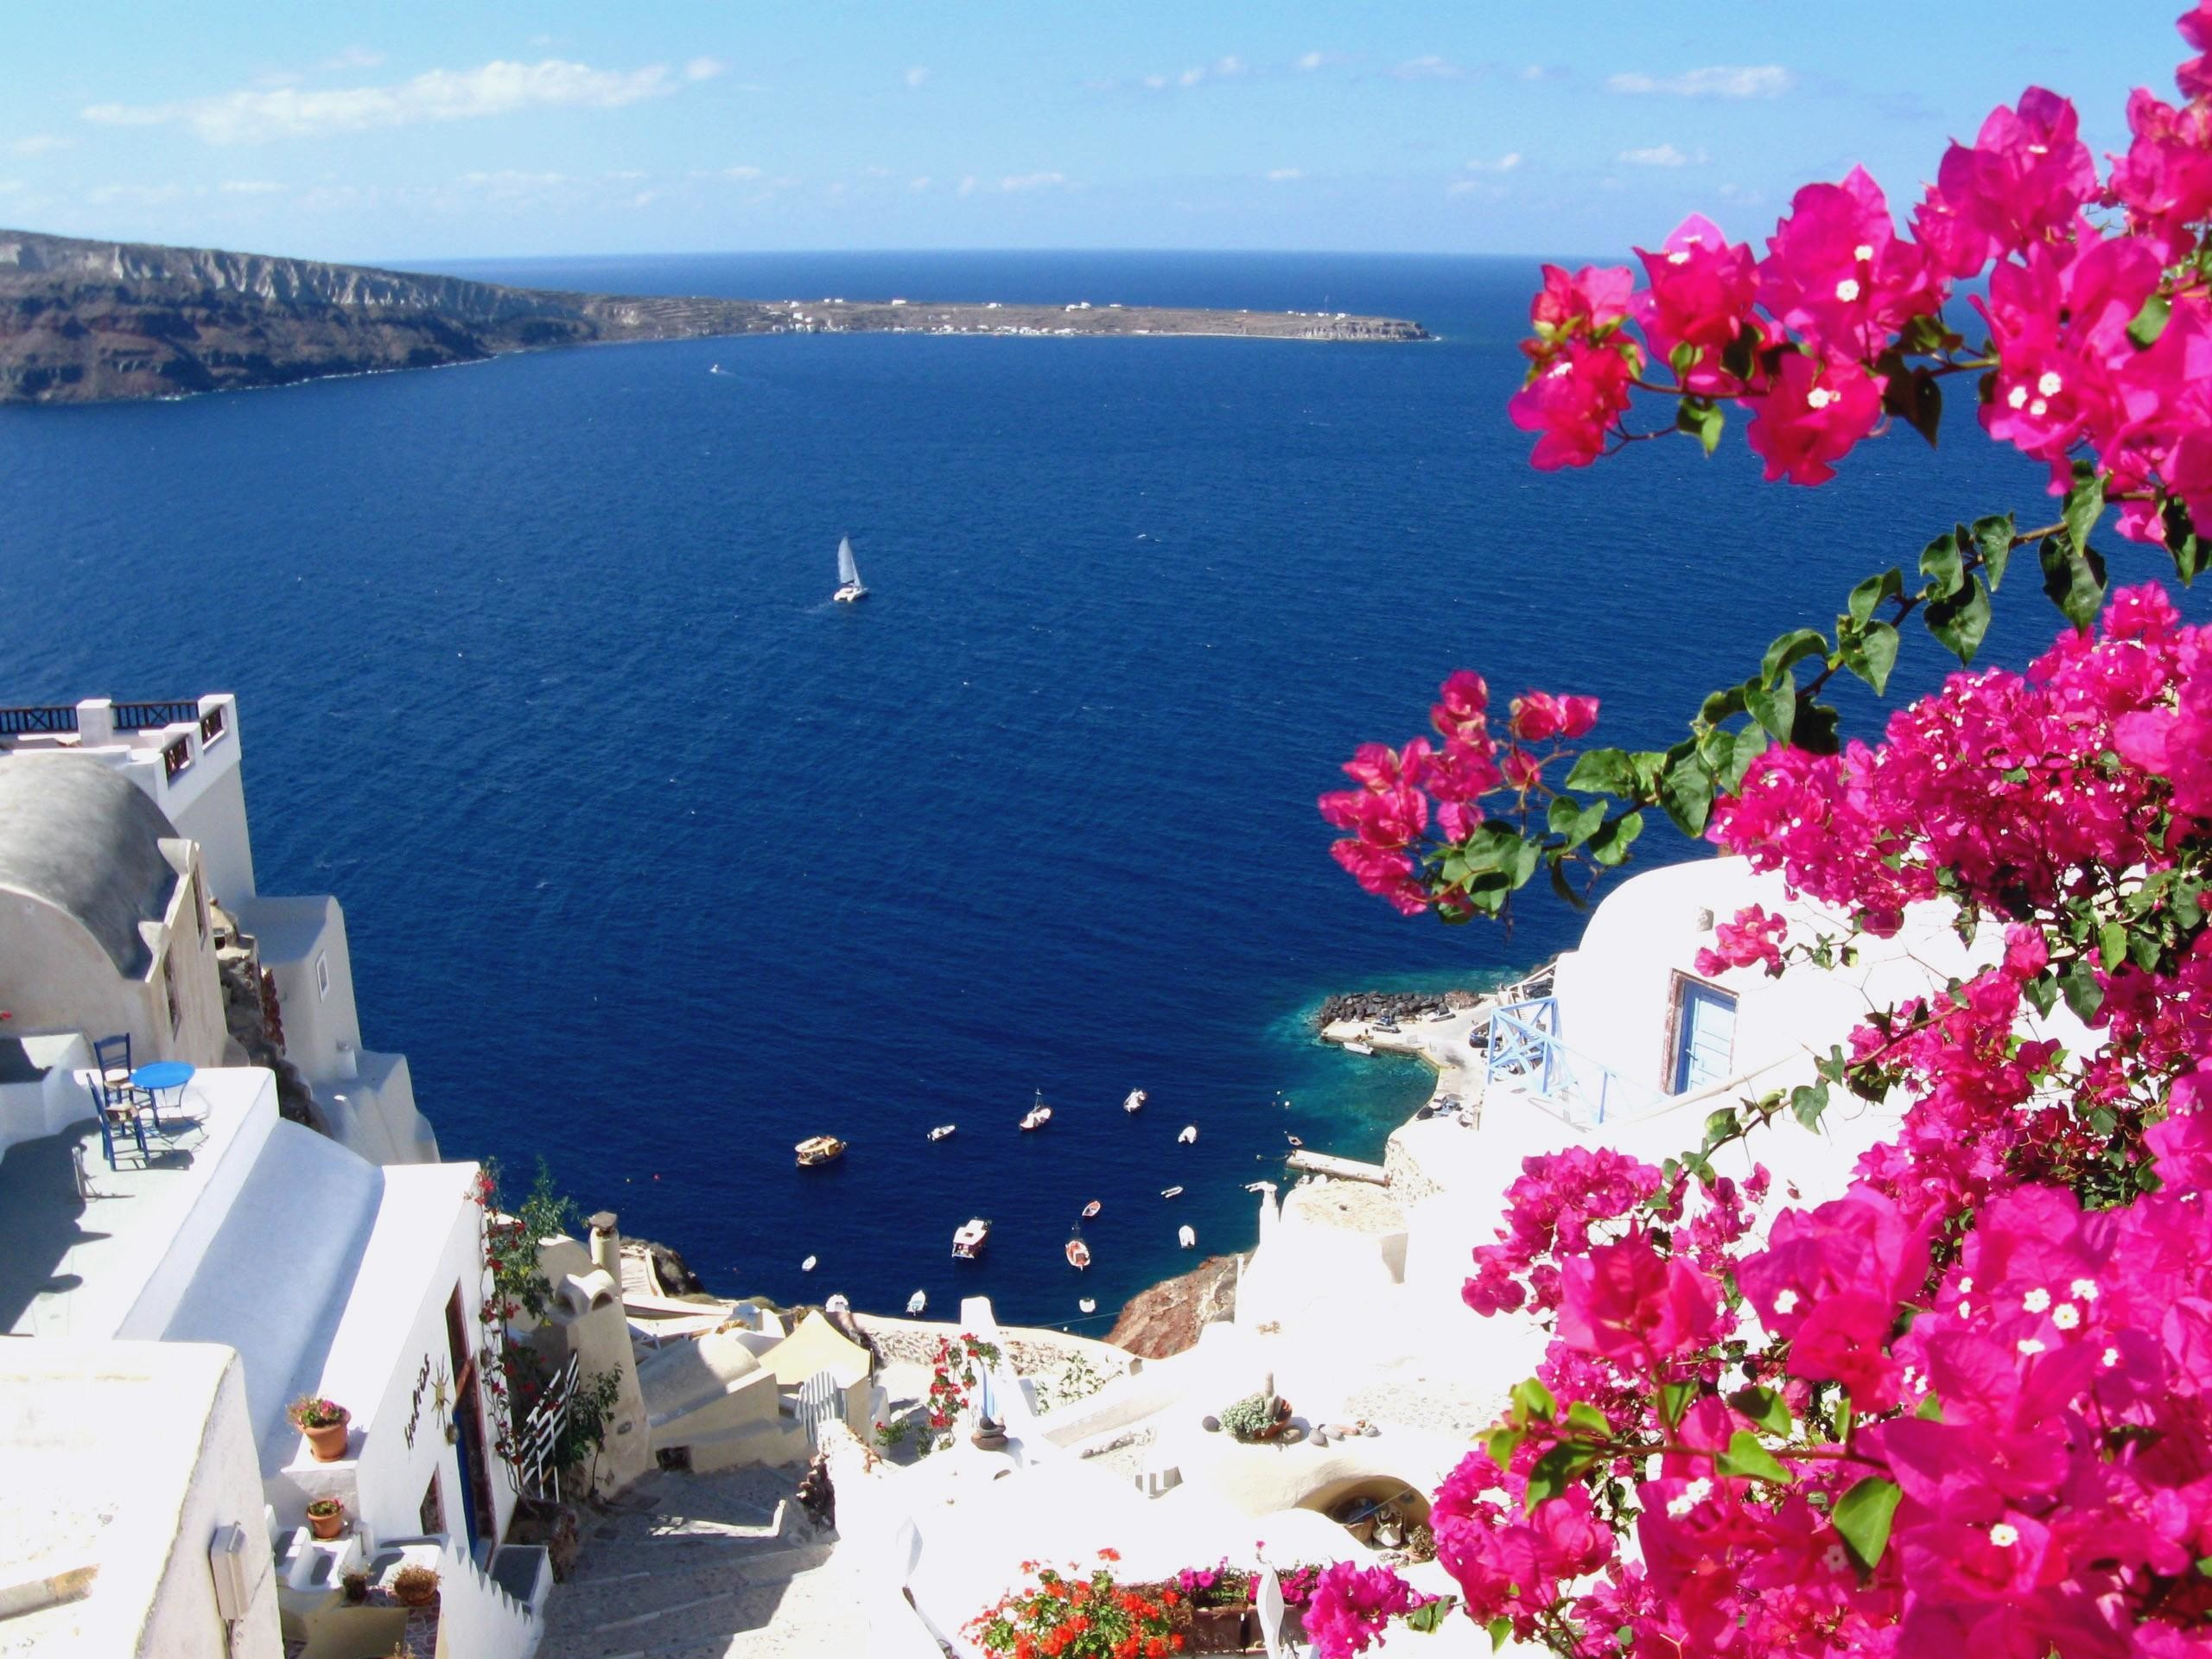 Greece Widescreen Wallpaper (57+ Images